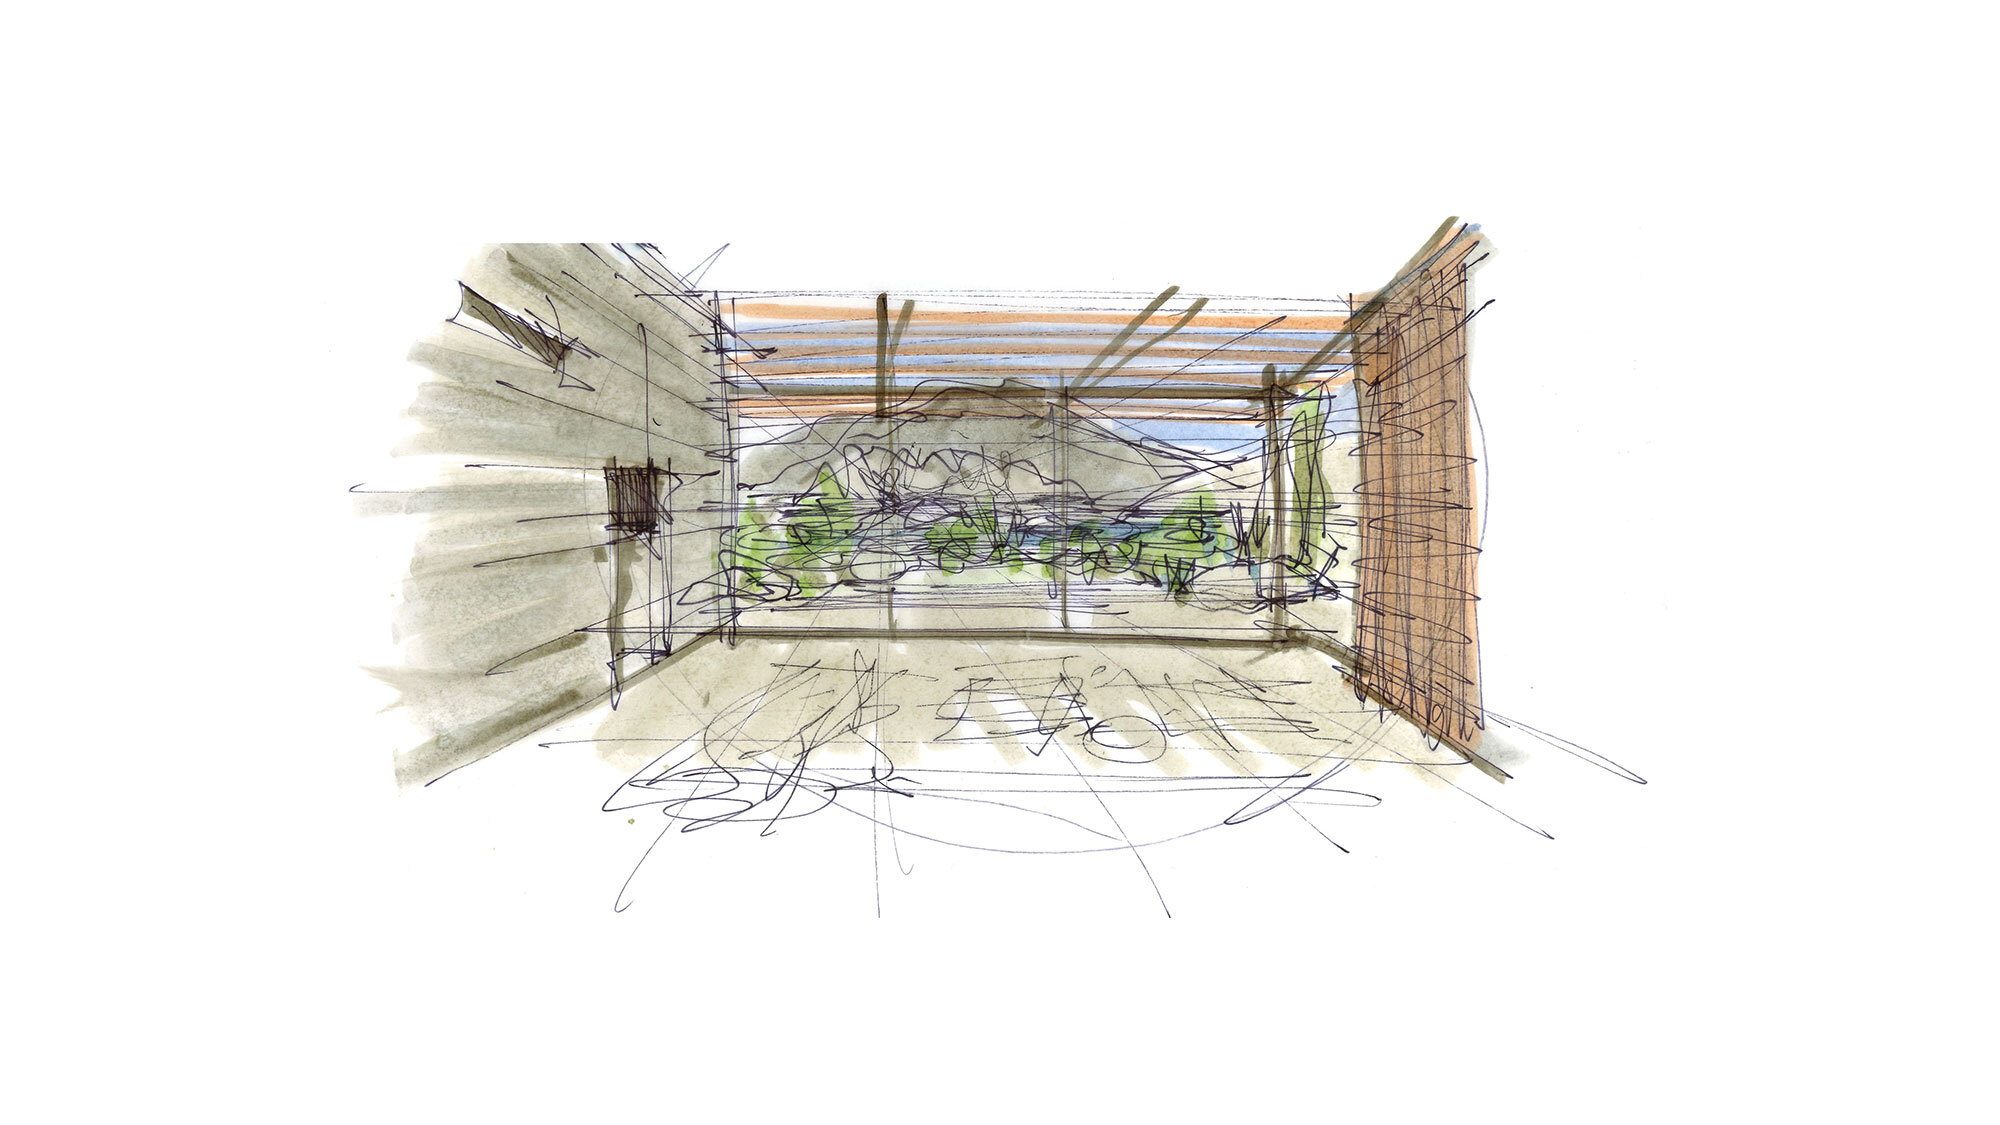 CCY Architects Coral Mountain Sketches 2